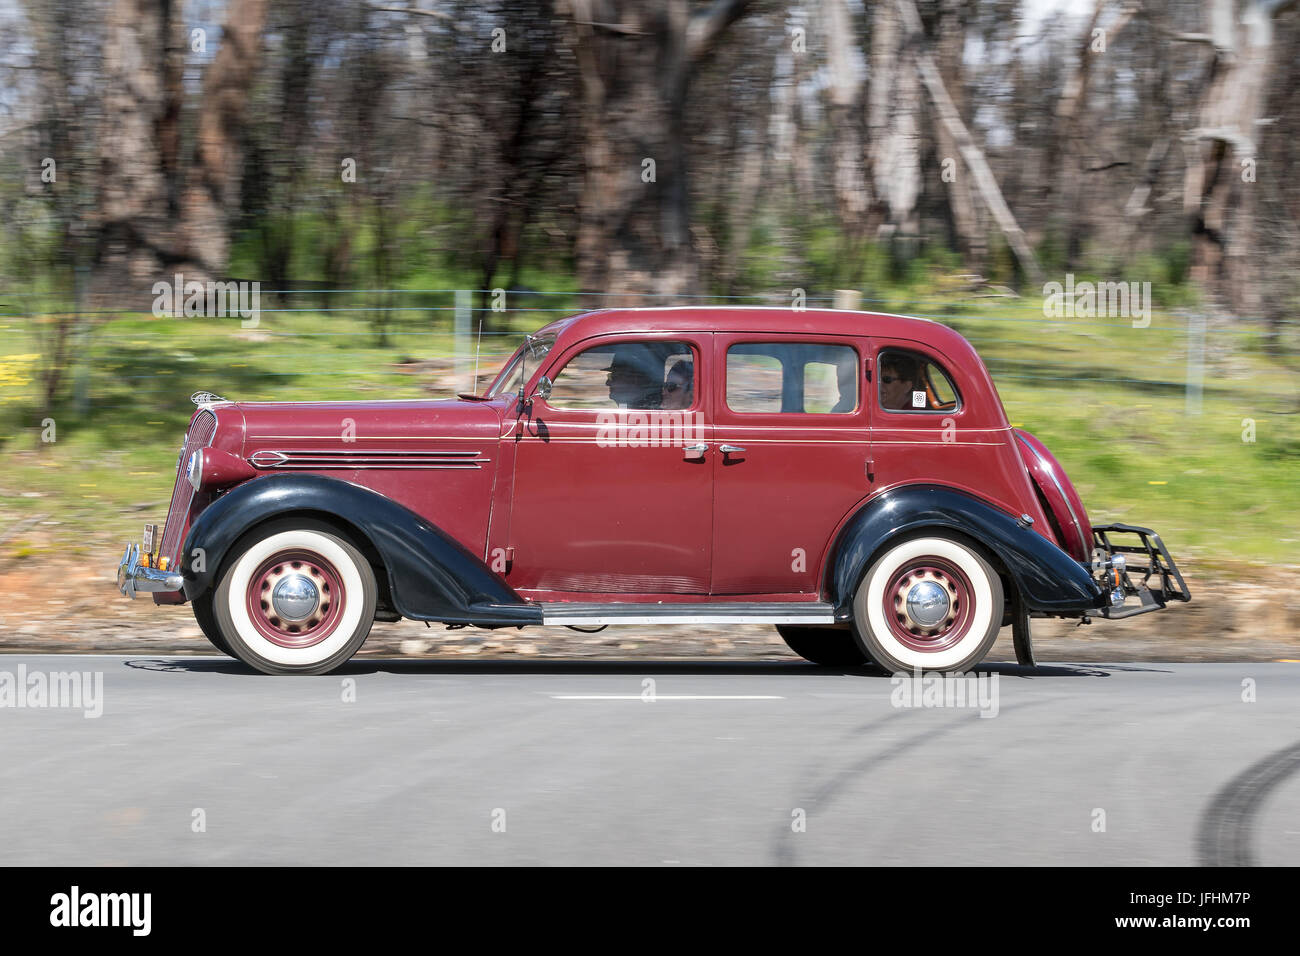 Plymouth Sedan Stock Photos Images Alamy 1948 Business Coupe Vintage 1936 Driving On Country Roads Near The Town Of Birdwood South